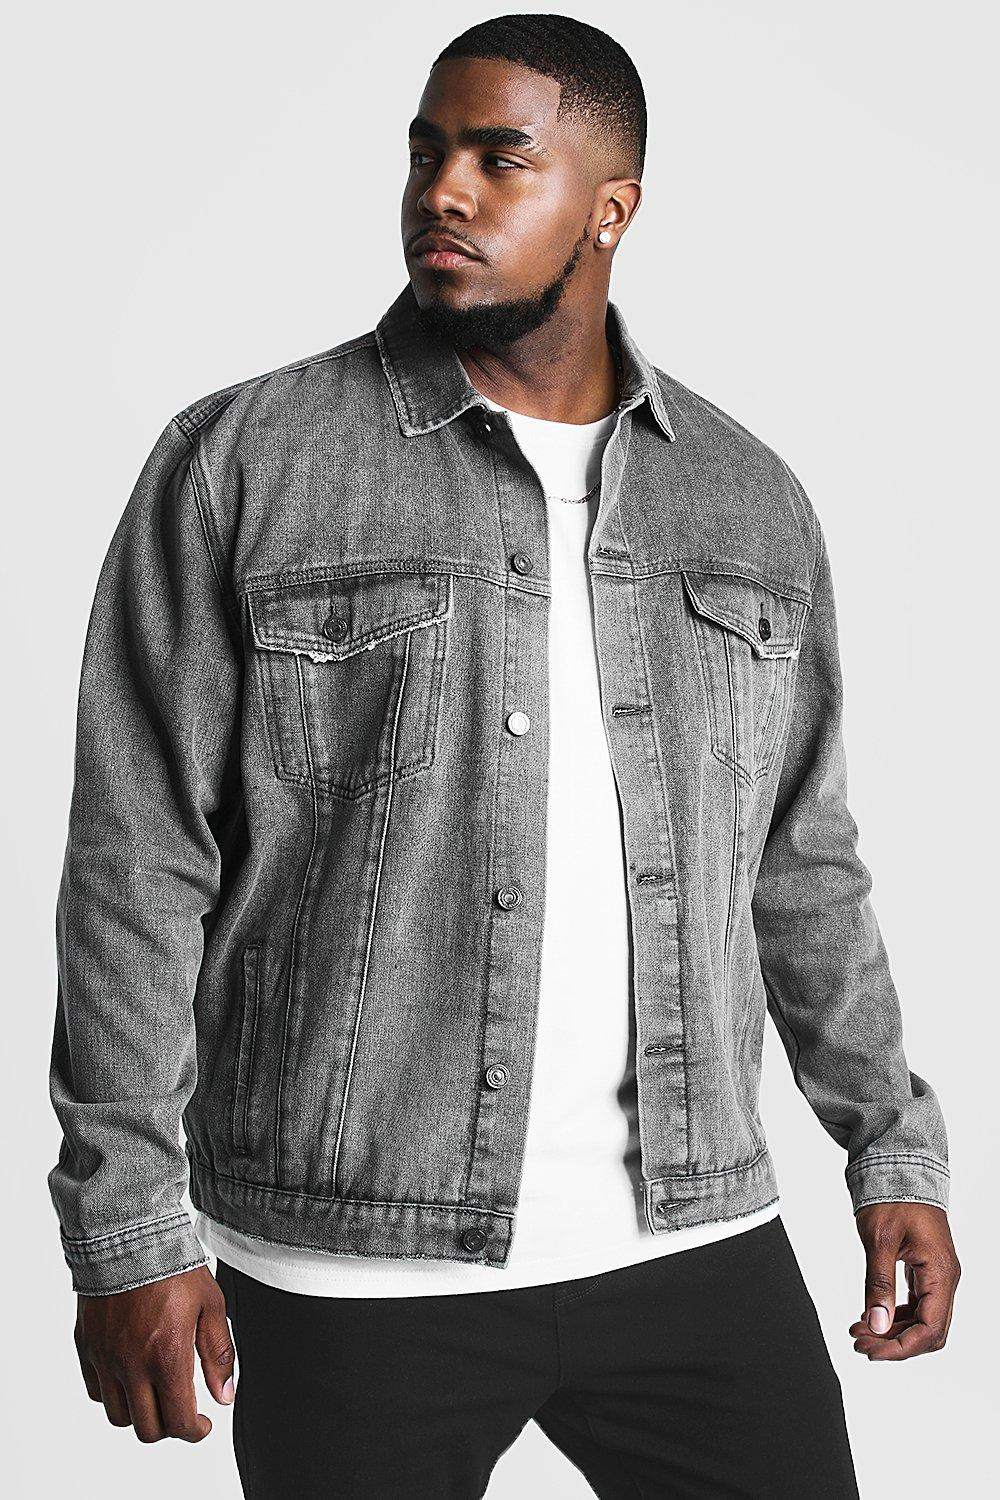 7323ece2 Mens Charcoal Big & Tall Denim Western Jacket. Hover to zoom